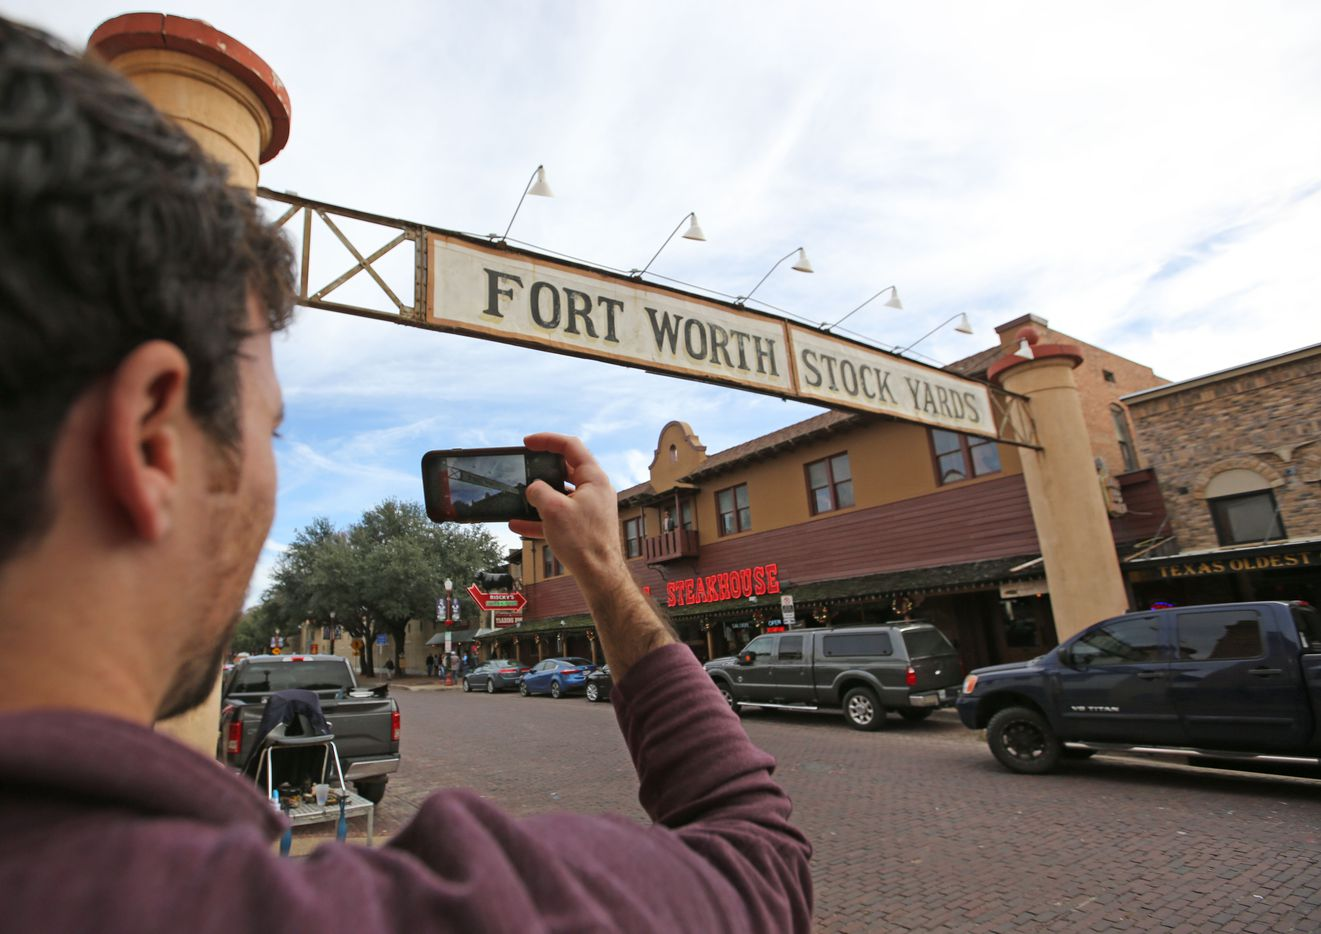 A stop in Fort Worth's Stockyards district.